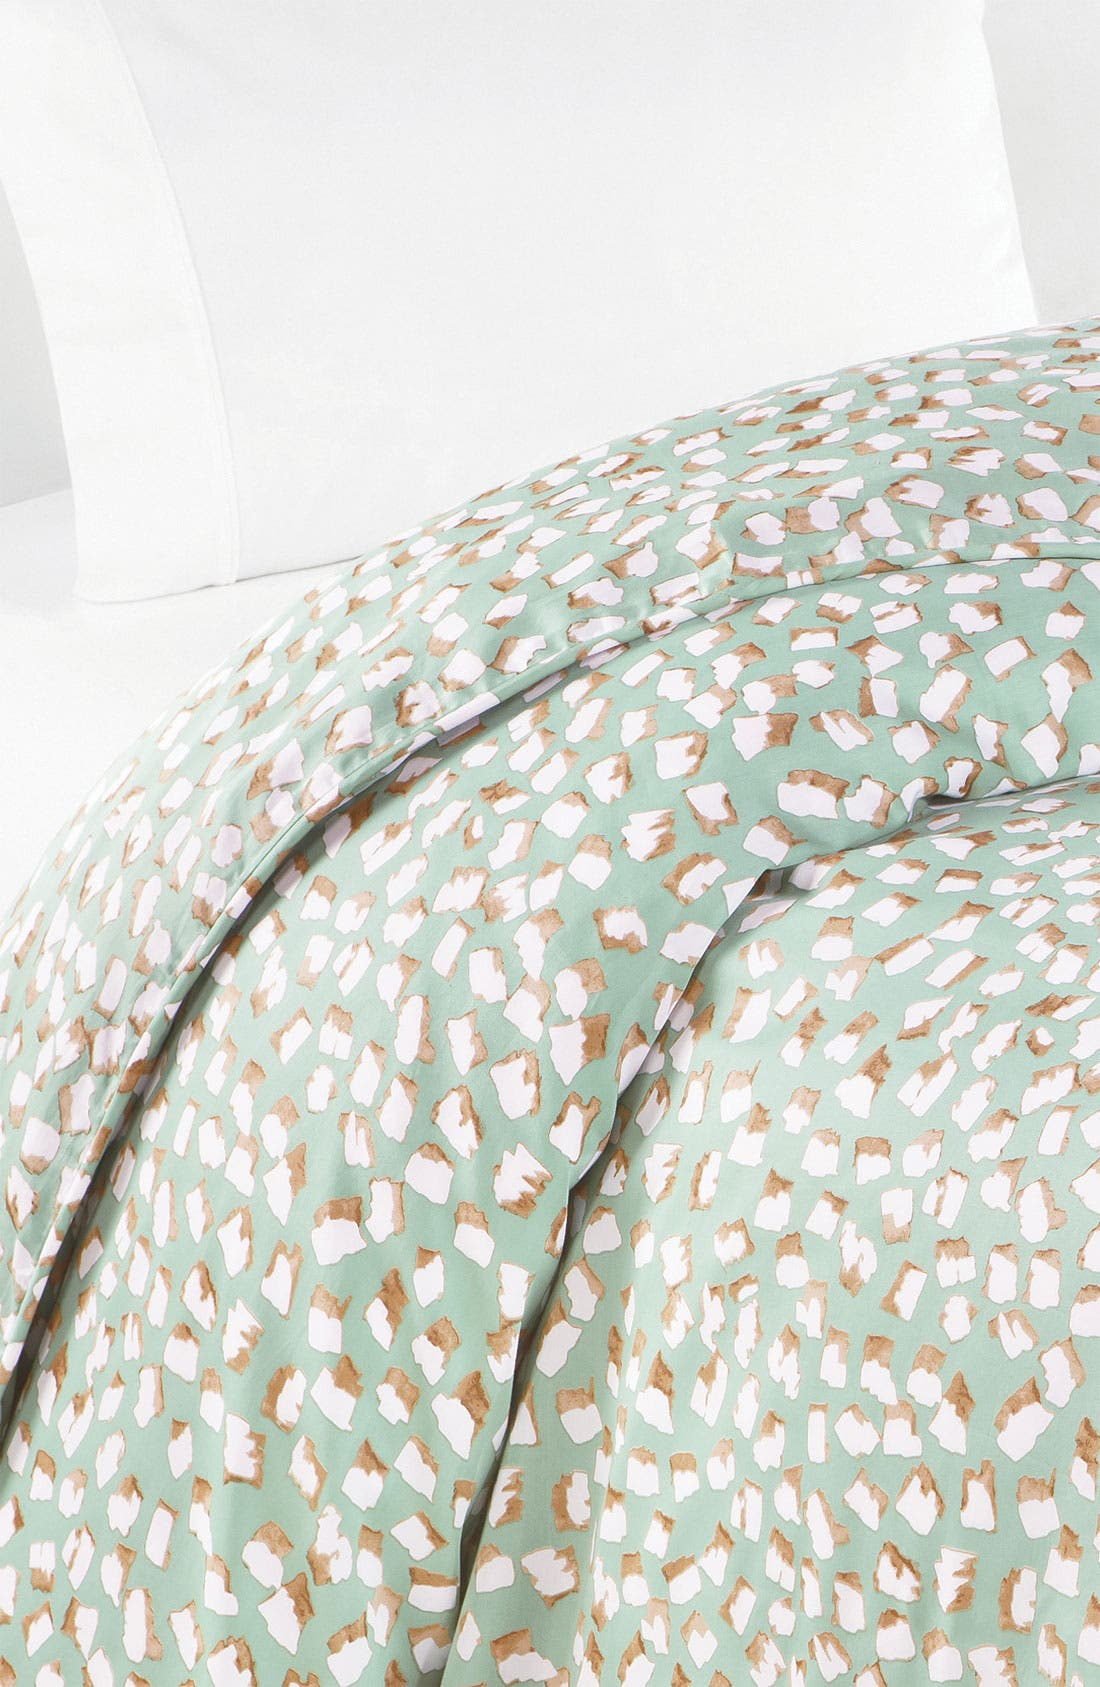 Alternate Image 1 Selected - Diane von Furstenberg 'Pomme Sky' 300 Thread Count Duvet Cover